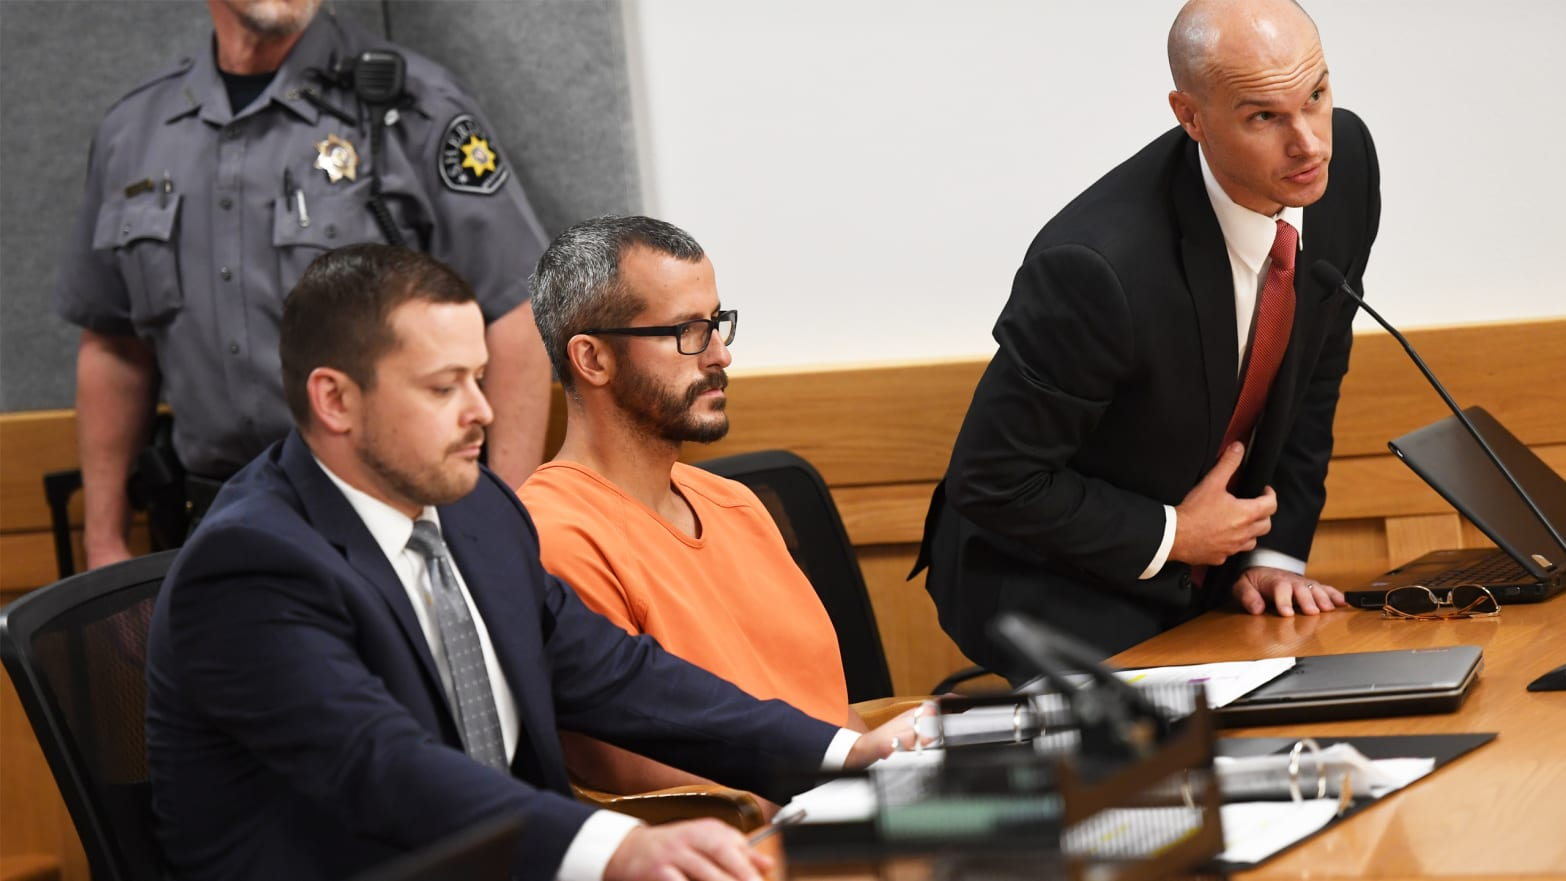 Denver Dad Chris Watts Gets Life in Prison as Attorneys Reveal